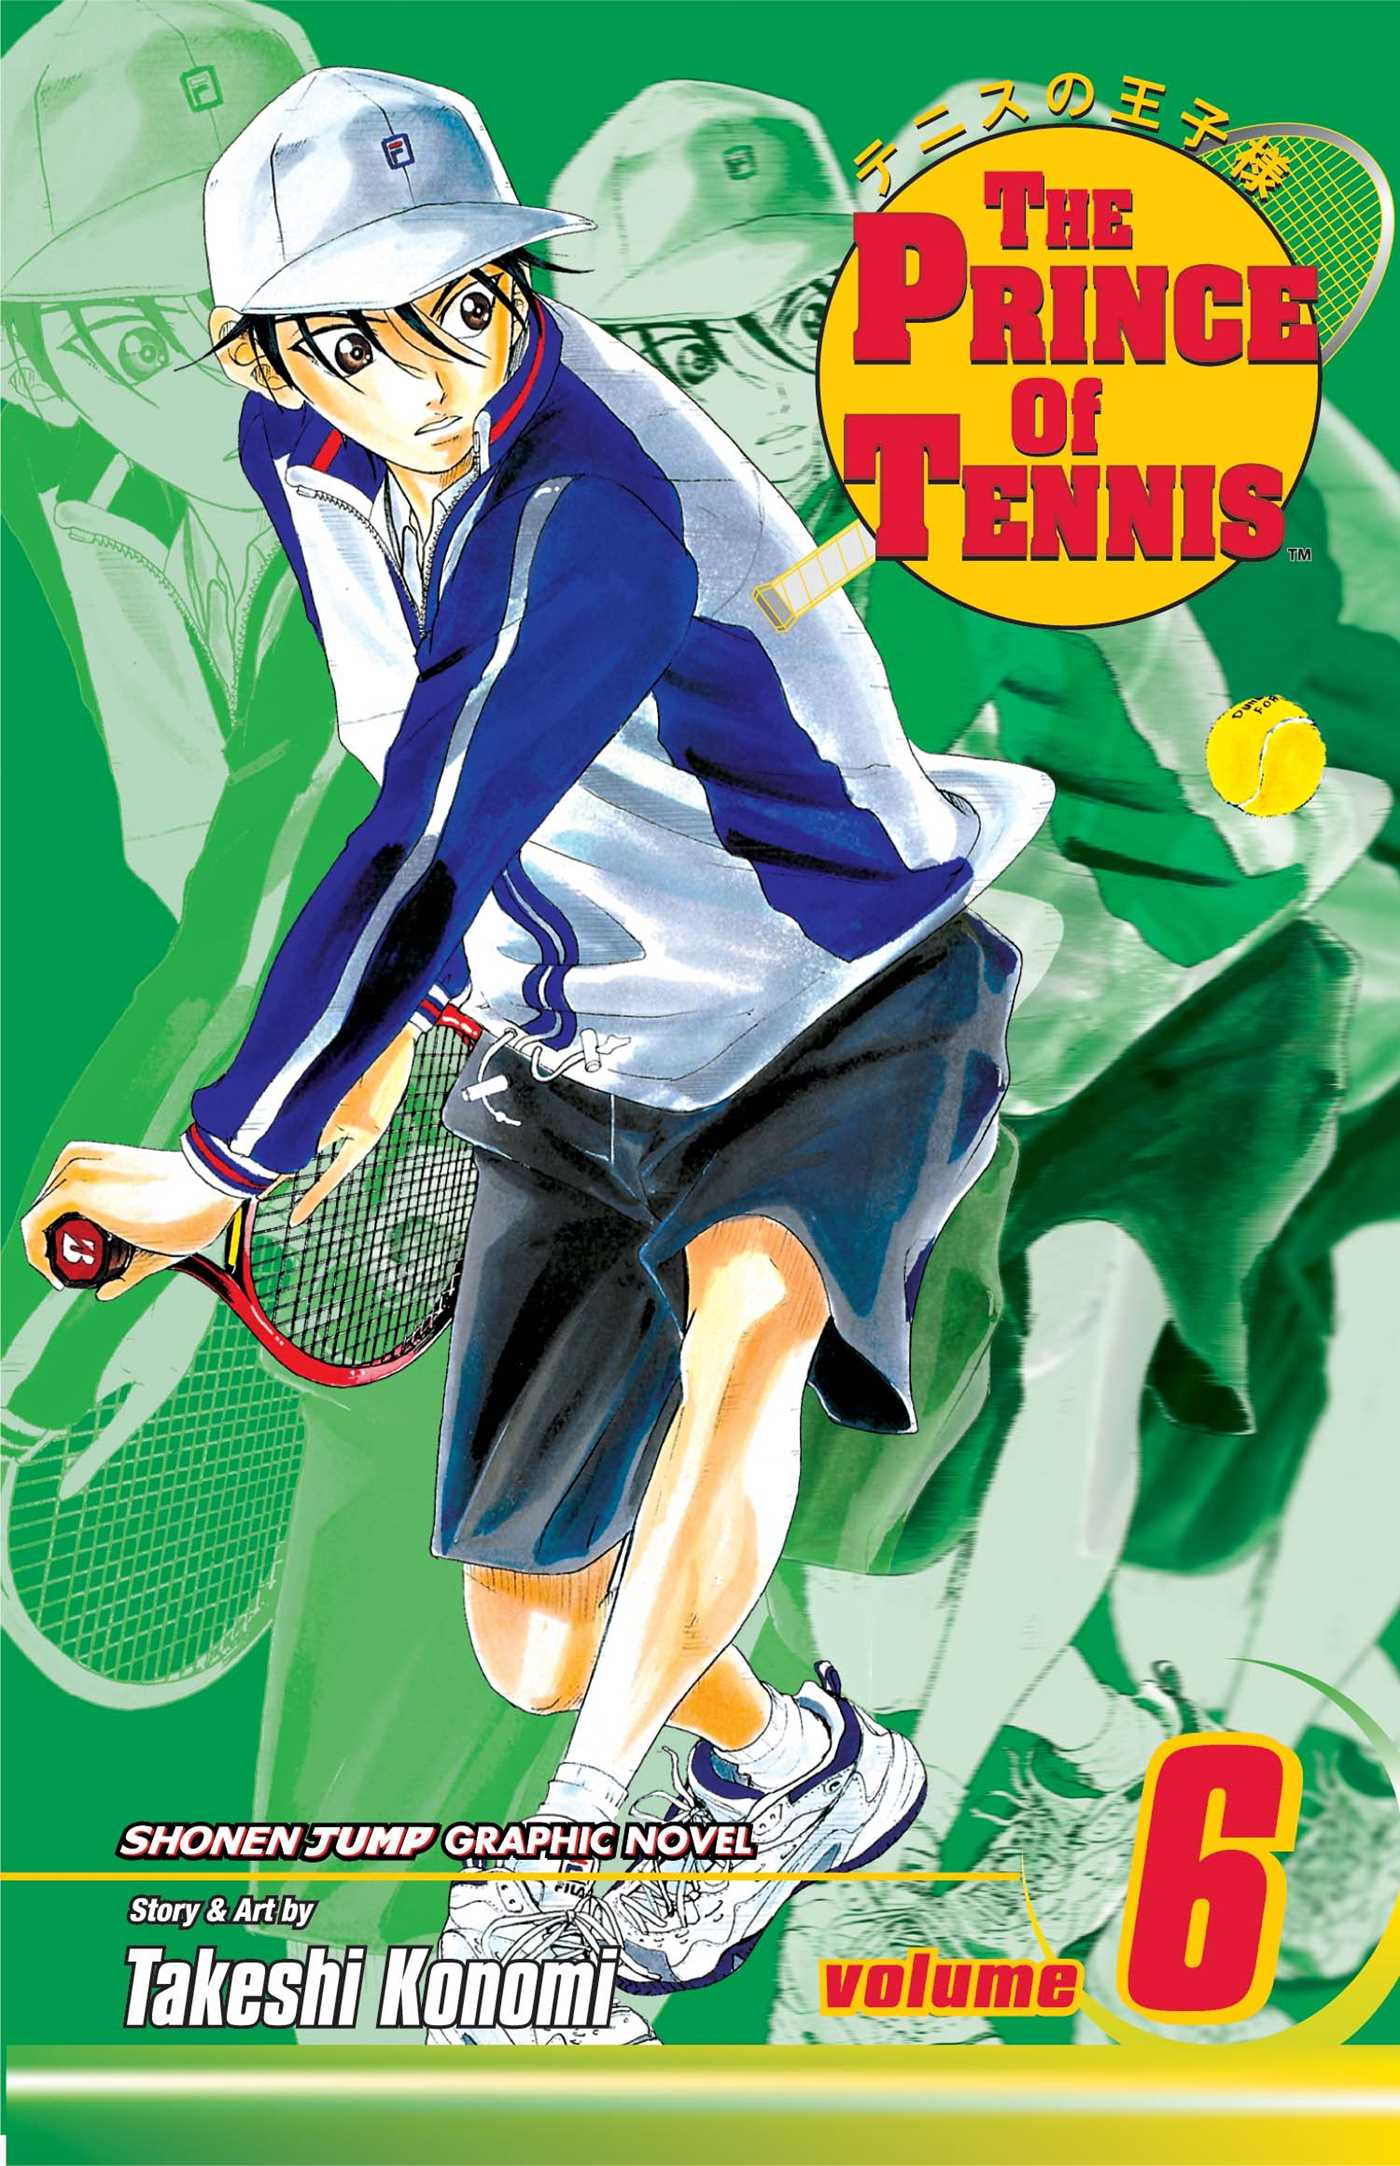 The Prince Of Tennis Vol 6 Book By Takeshi Konomi Official Publisher Page Simon Schuster